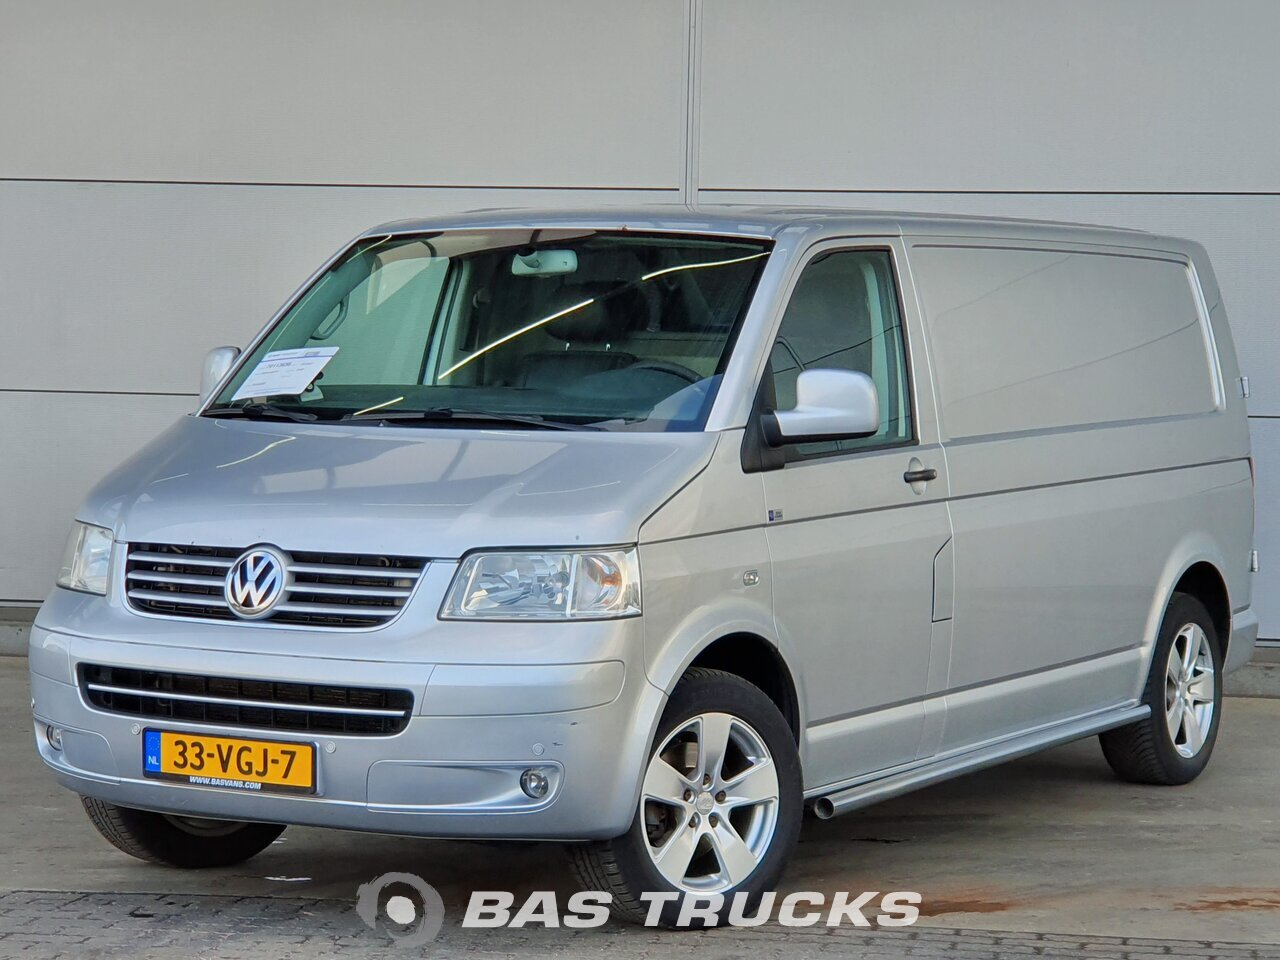 latest hot new products wholesale price For sale at BAS Vans: Volkswagen Transporter 04/2007